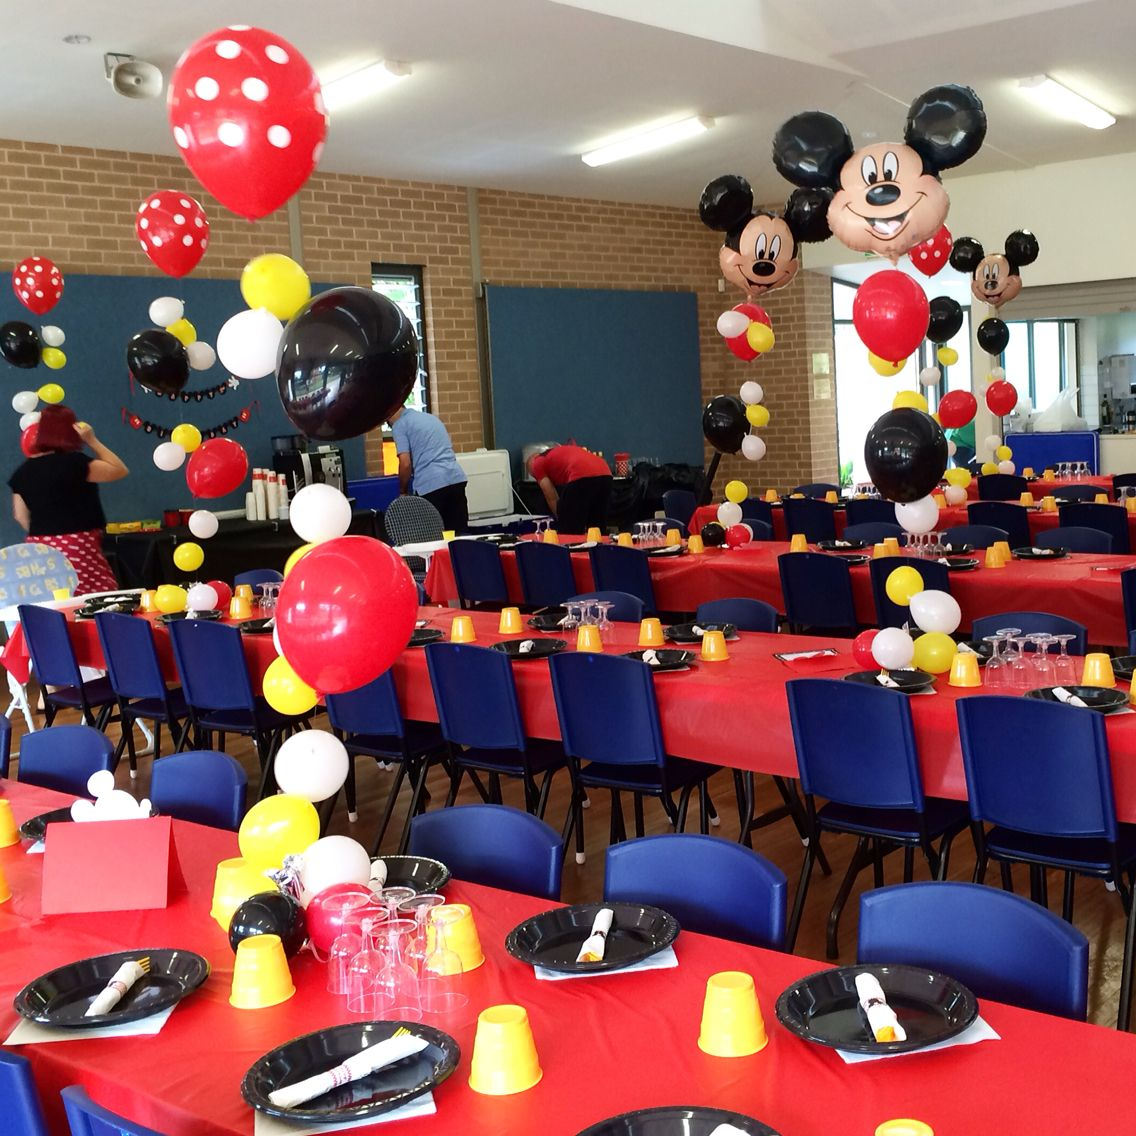 Customised bubble strands with Mickey Mouse and red polka